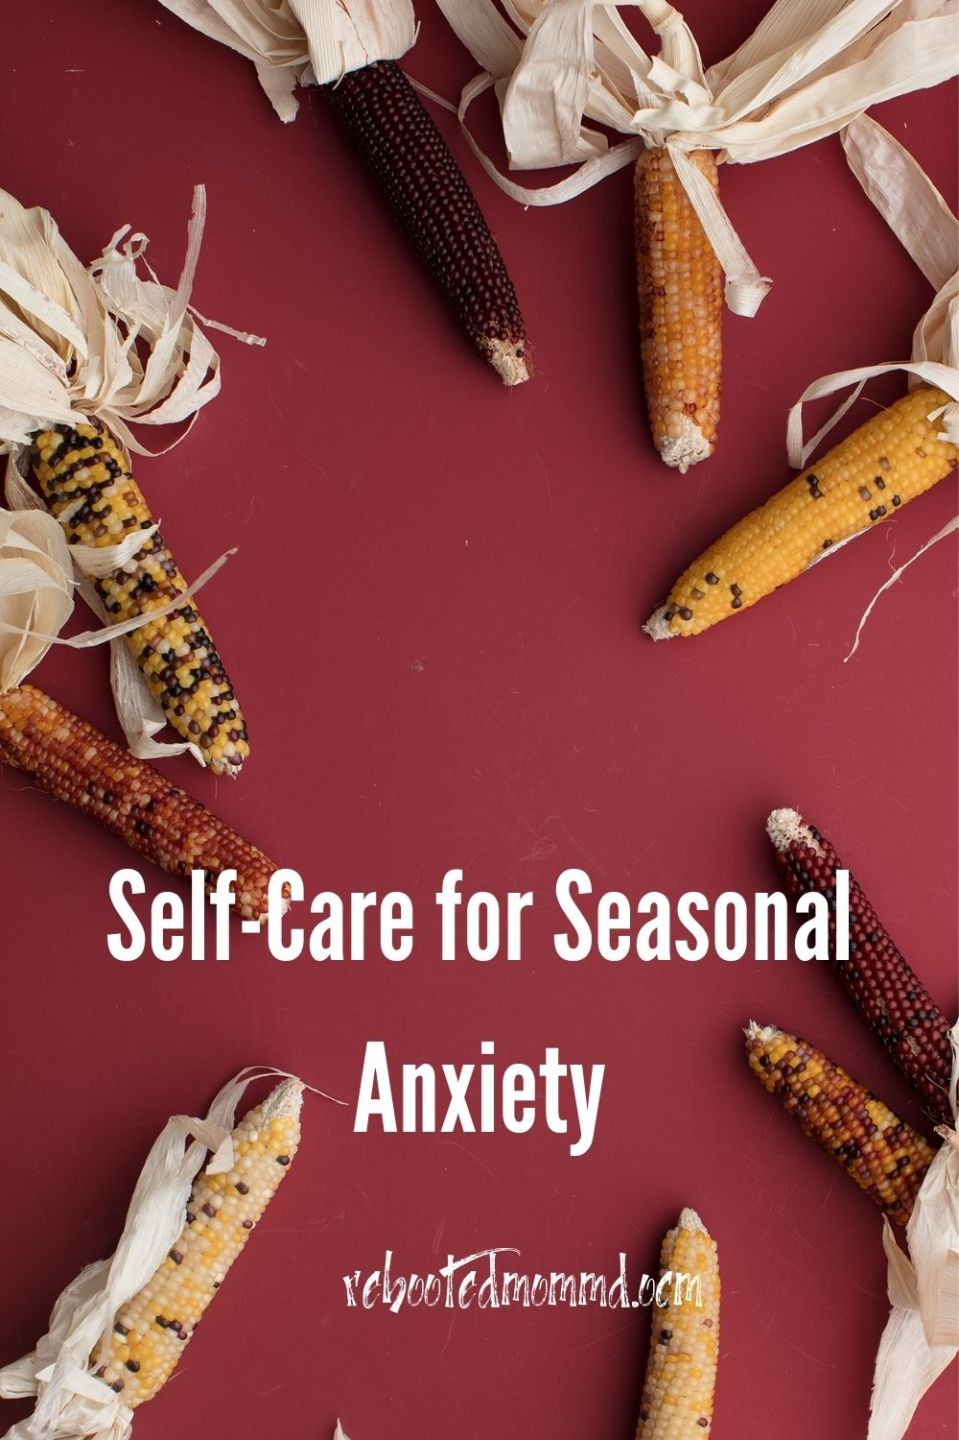 Some Self-Care for Seasonal Anxiety